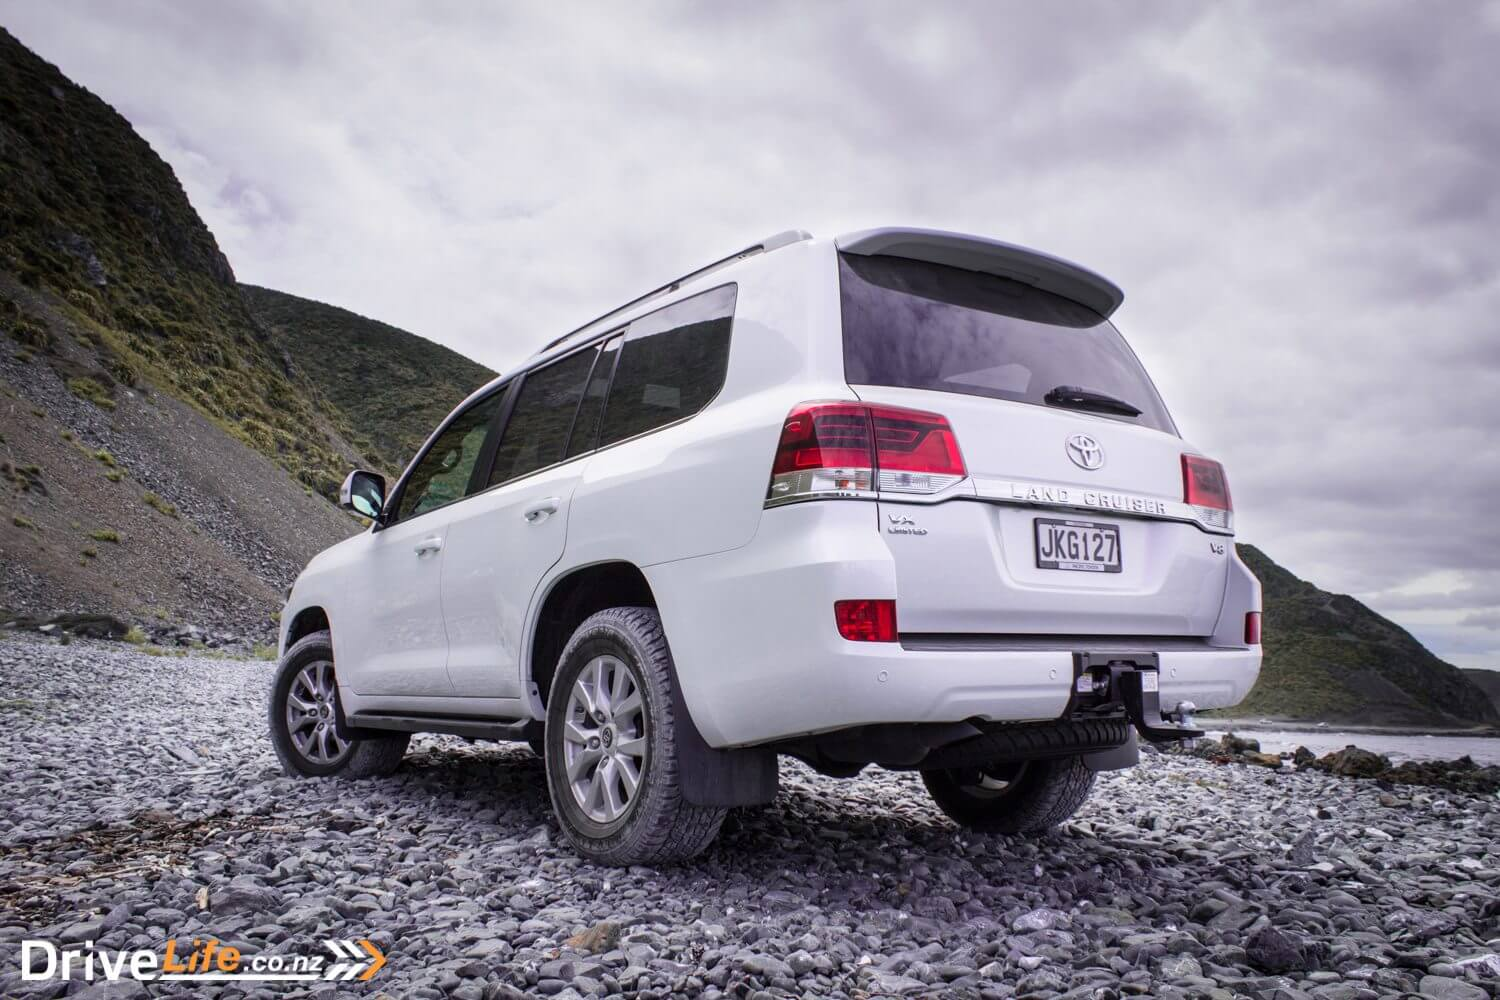 2016 Toyota Landcruiser 200 VX Limited – Car Review - DriveLife